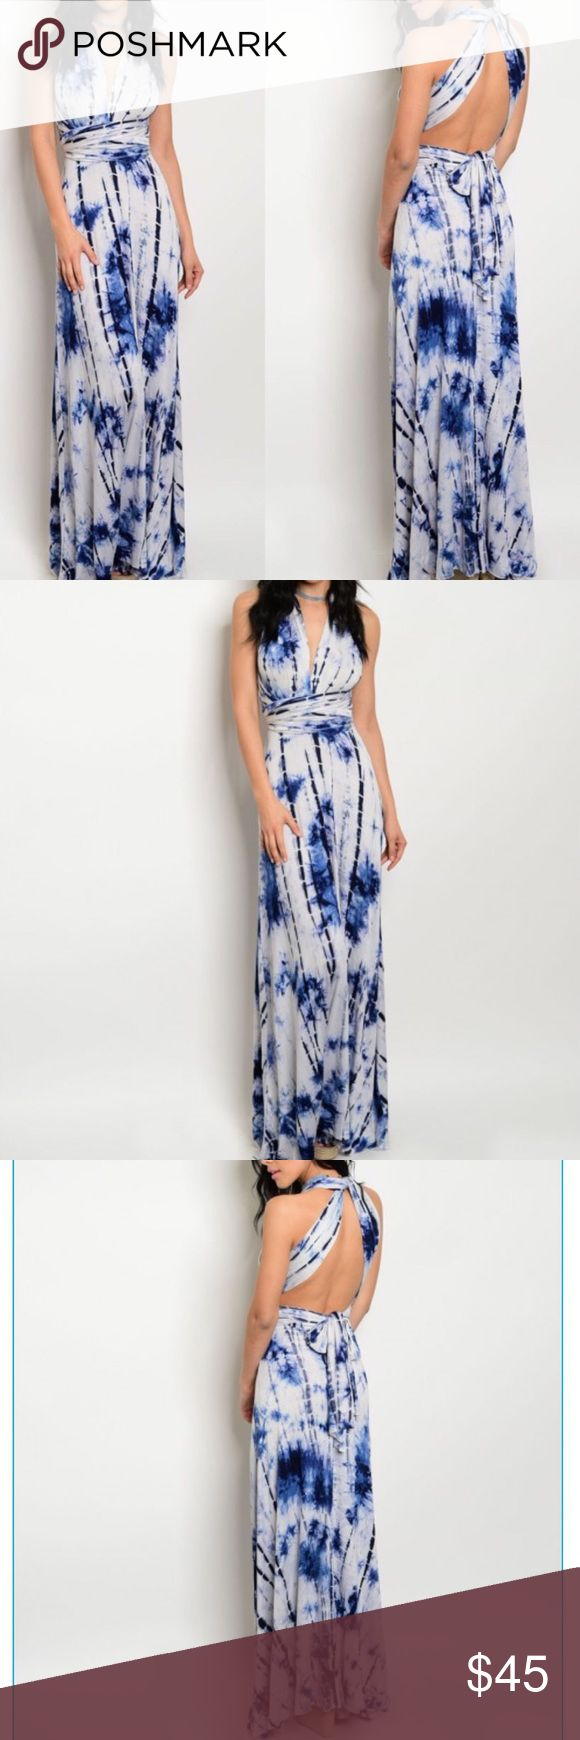 BLUE TIE DYE CONVERTIBLE MULTI-WAY MAXI DRESS-NEW 💙NAVY BLUE AND WHITE TIE-DYE JERSEY CONVERTIBLE OR MUTI-WAY WEAR MAXI DRESS. CONVERTIBLE DRESSES ARE ALL THE RAGE! YOU CAN STYLE THIS CONVERTIBLE TOP DRESS IN SO MANY WAYS. SEVERAL DRESSES IN ONE. IT IS ELEGANT, CLASSY AND SEXY. CAN BE WORN AS A CASUAL DRESS, FORMAL DRESS, RESORT WEAR DRESS, CRUISE DRESS OR FOR ANY OCCASION. GOES GREAT WITH THE SILICONE BRA IN OUR CLOSET. 95% RAYON, 5% SPANDEX. MADE IN THE USA AND AVAILABLE IN S-M-L…